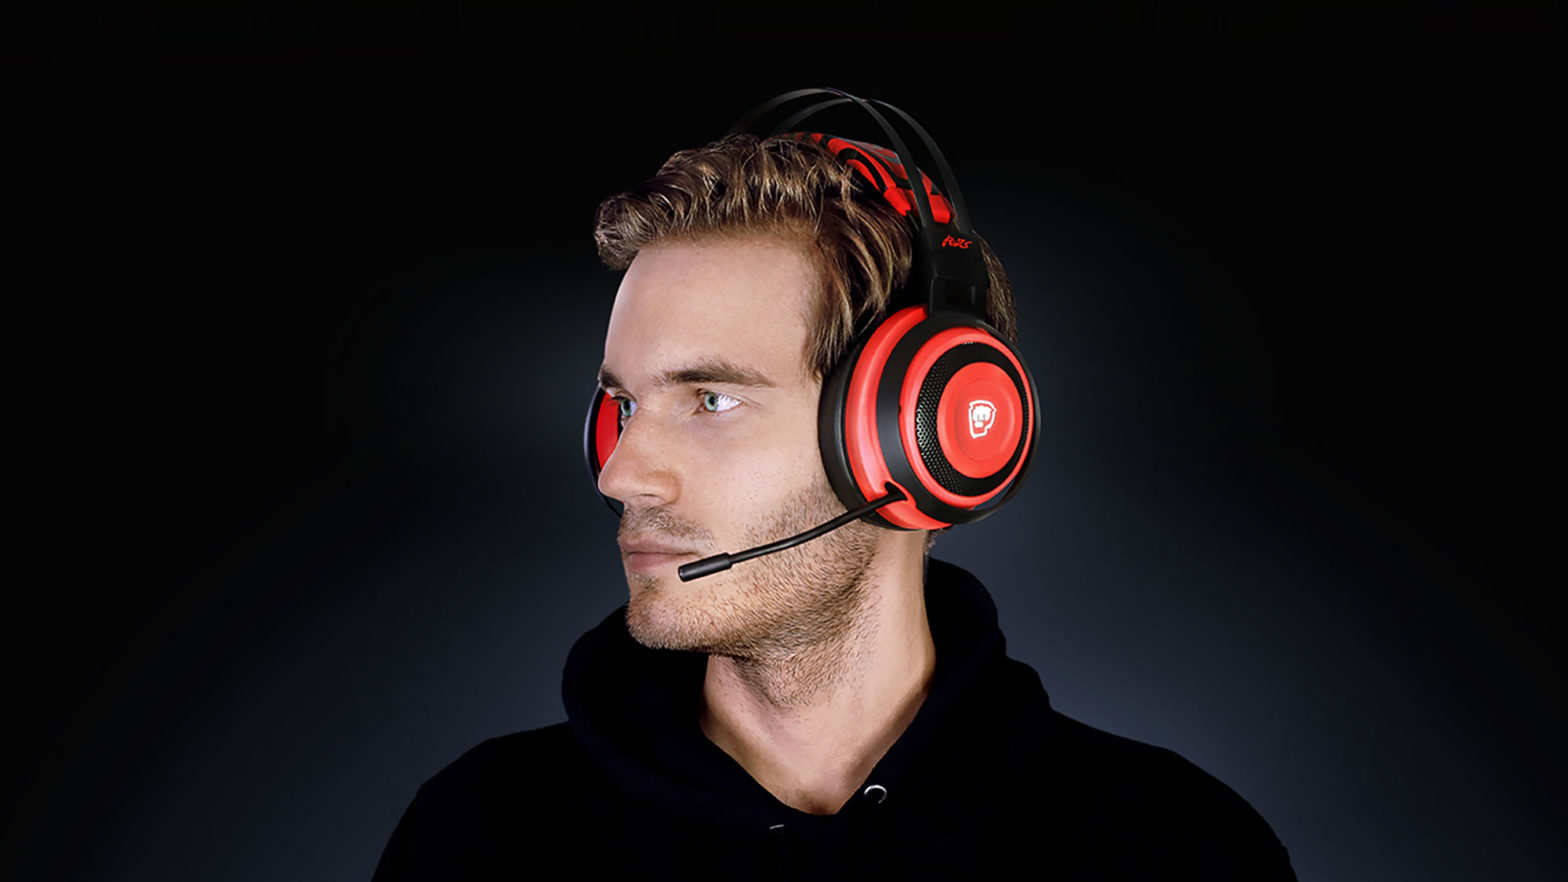 PewDiePie Razer Nari Ultimate Gaming Headphones